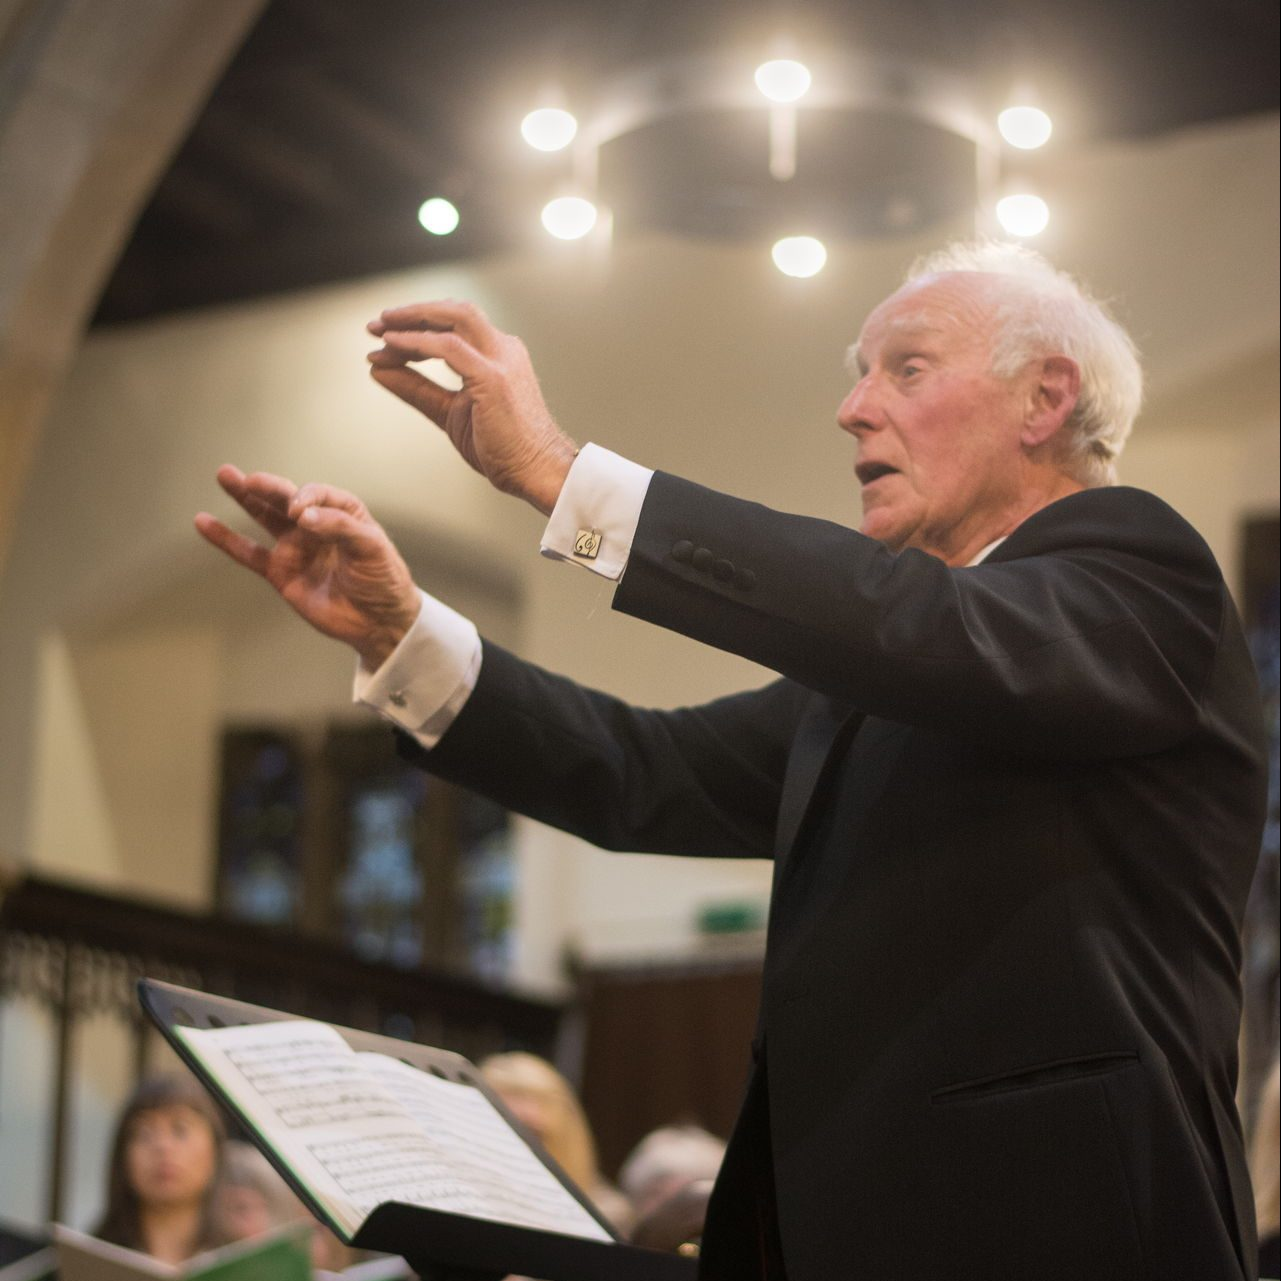 Frank Smith conducting